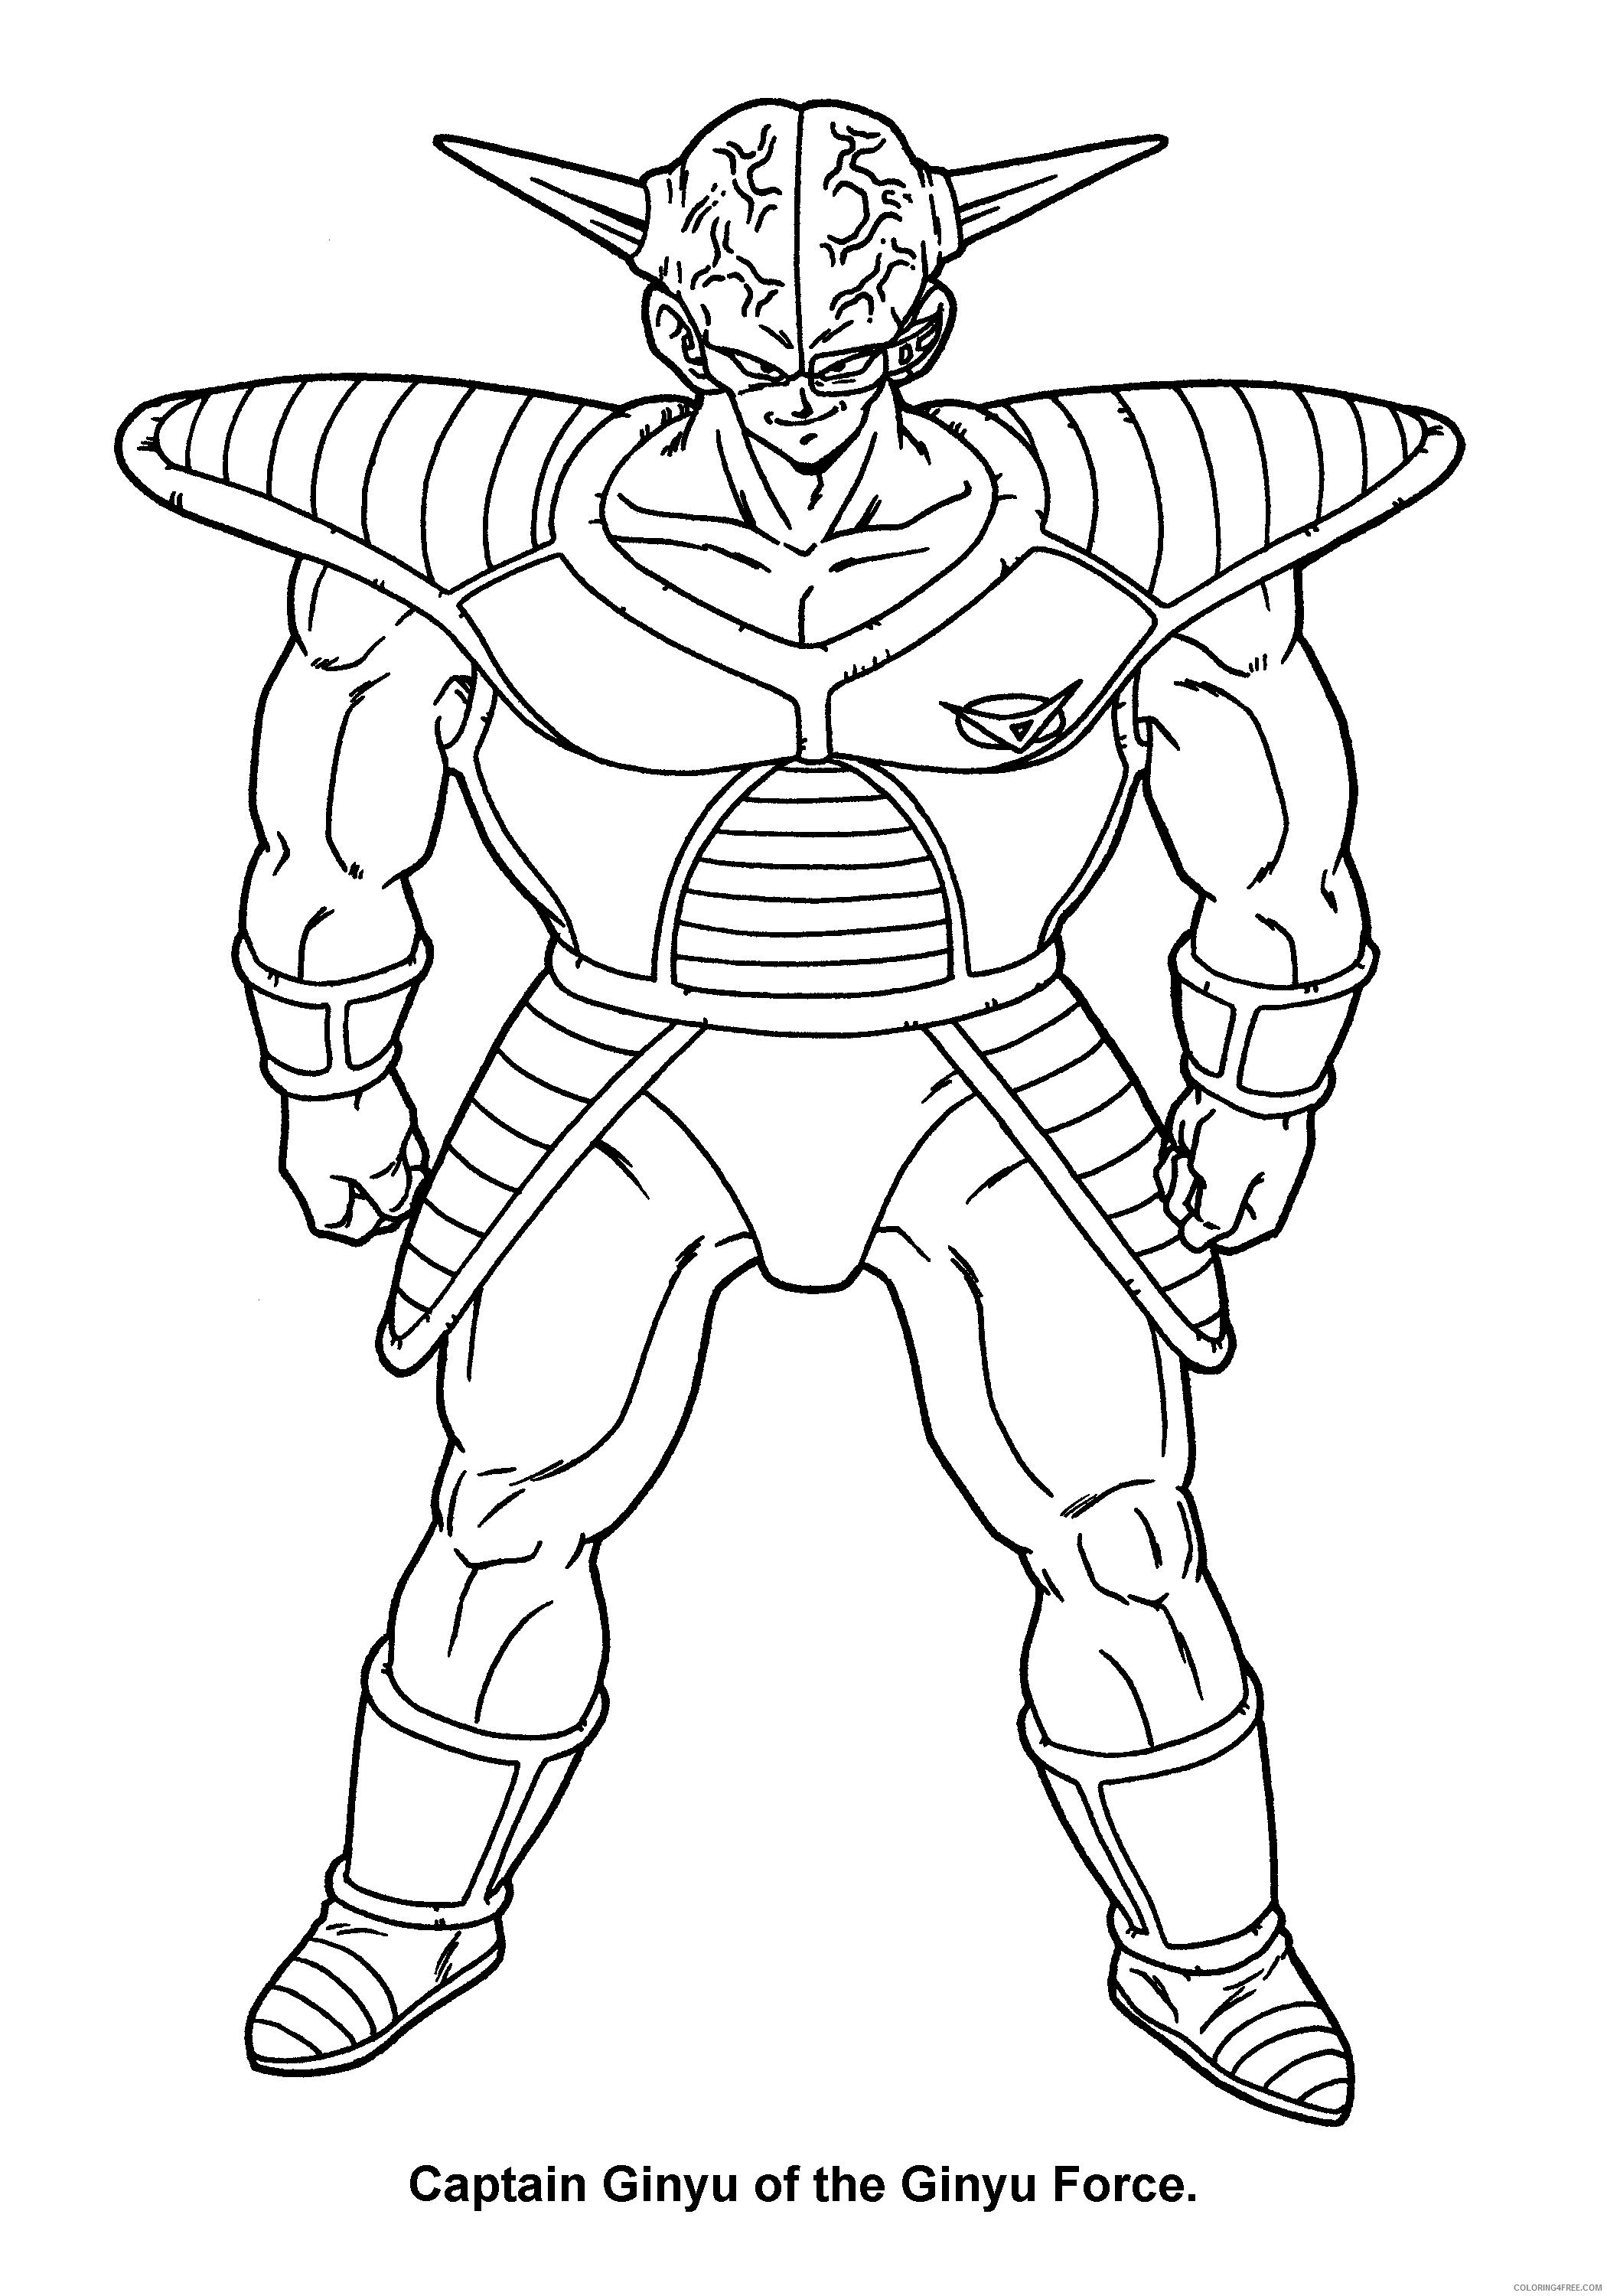 067 dragon ball z captain ginyu of the ginyu force Printable Coloring4free